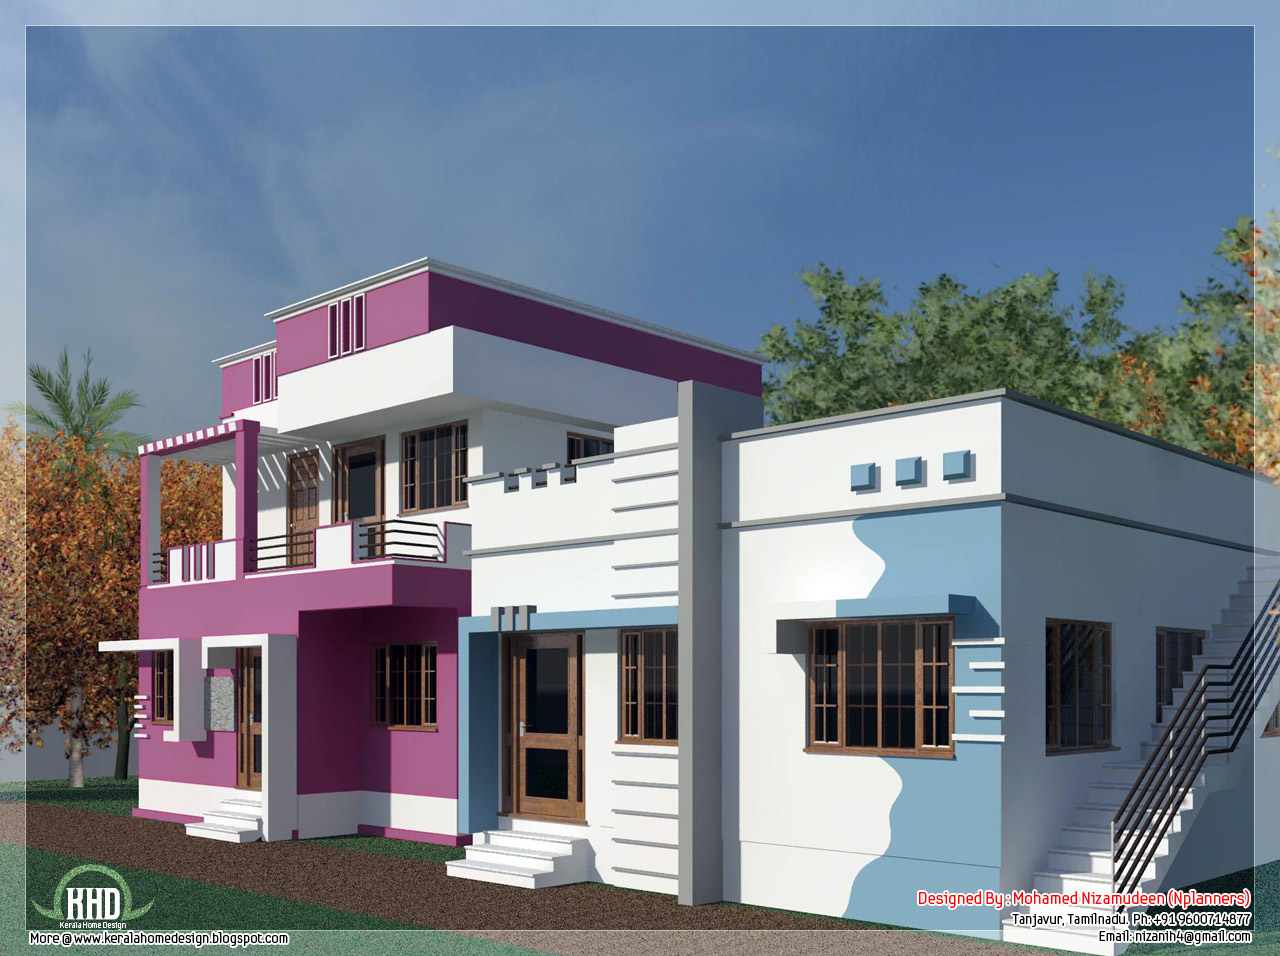 Tamilnadu model home design in 3000 kerala home for Home front design model